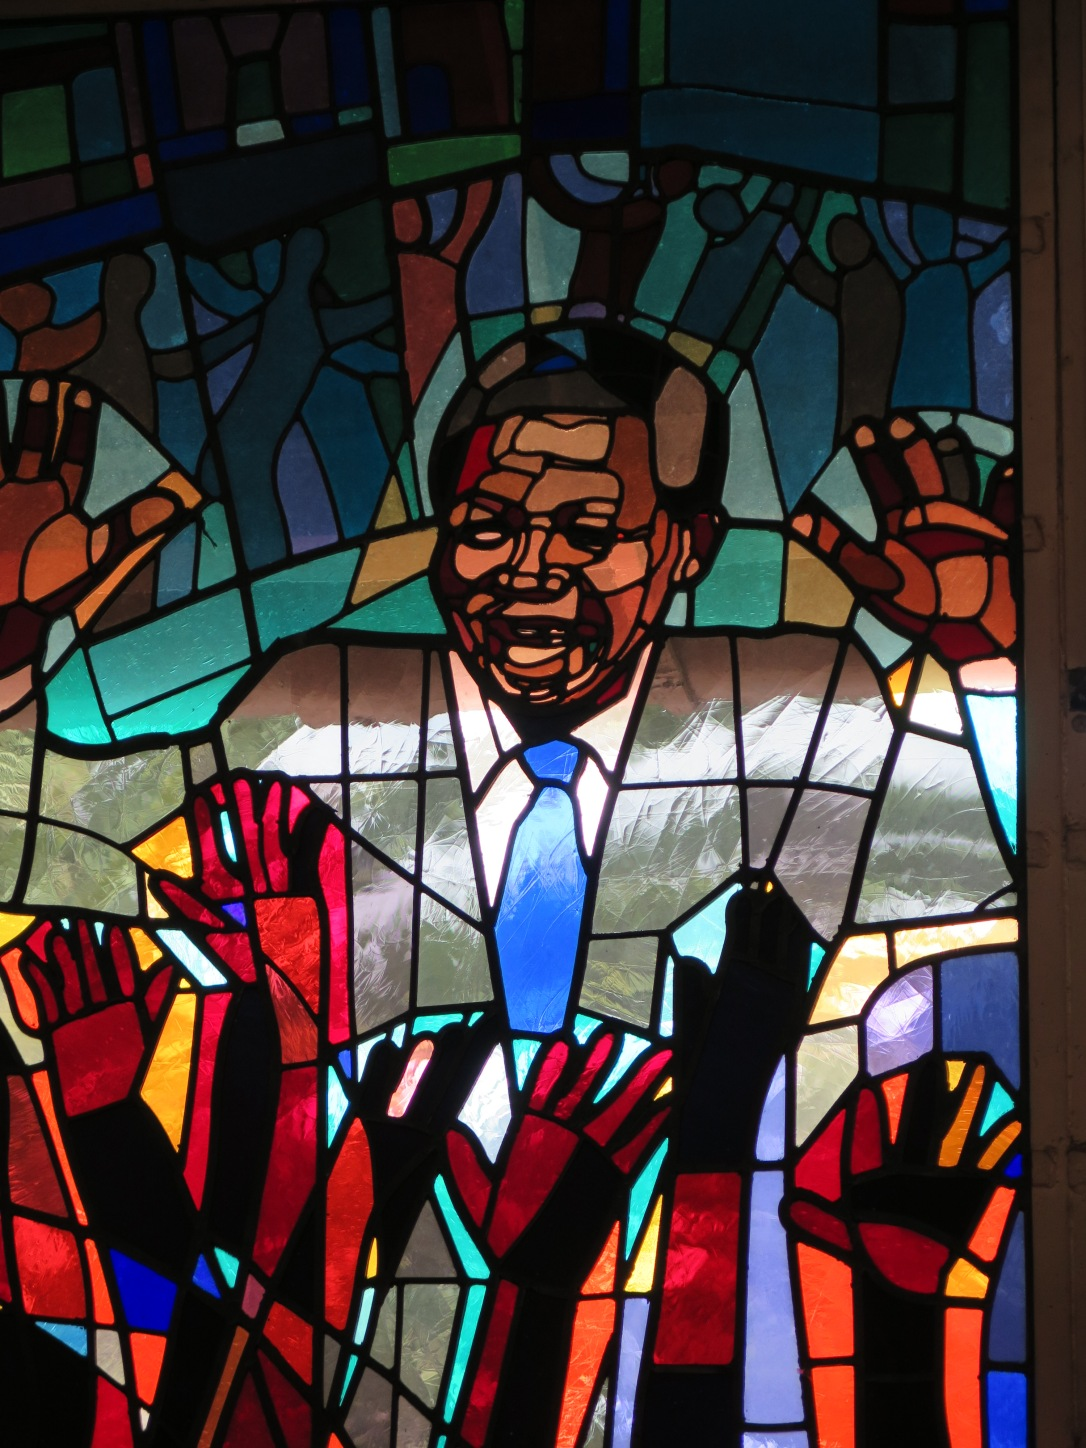 Stained Glass window in Soweto church depicting Nelson Mandela.